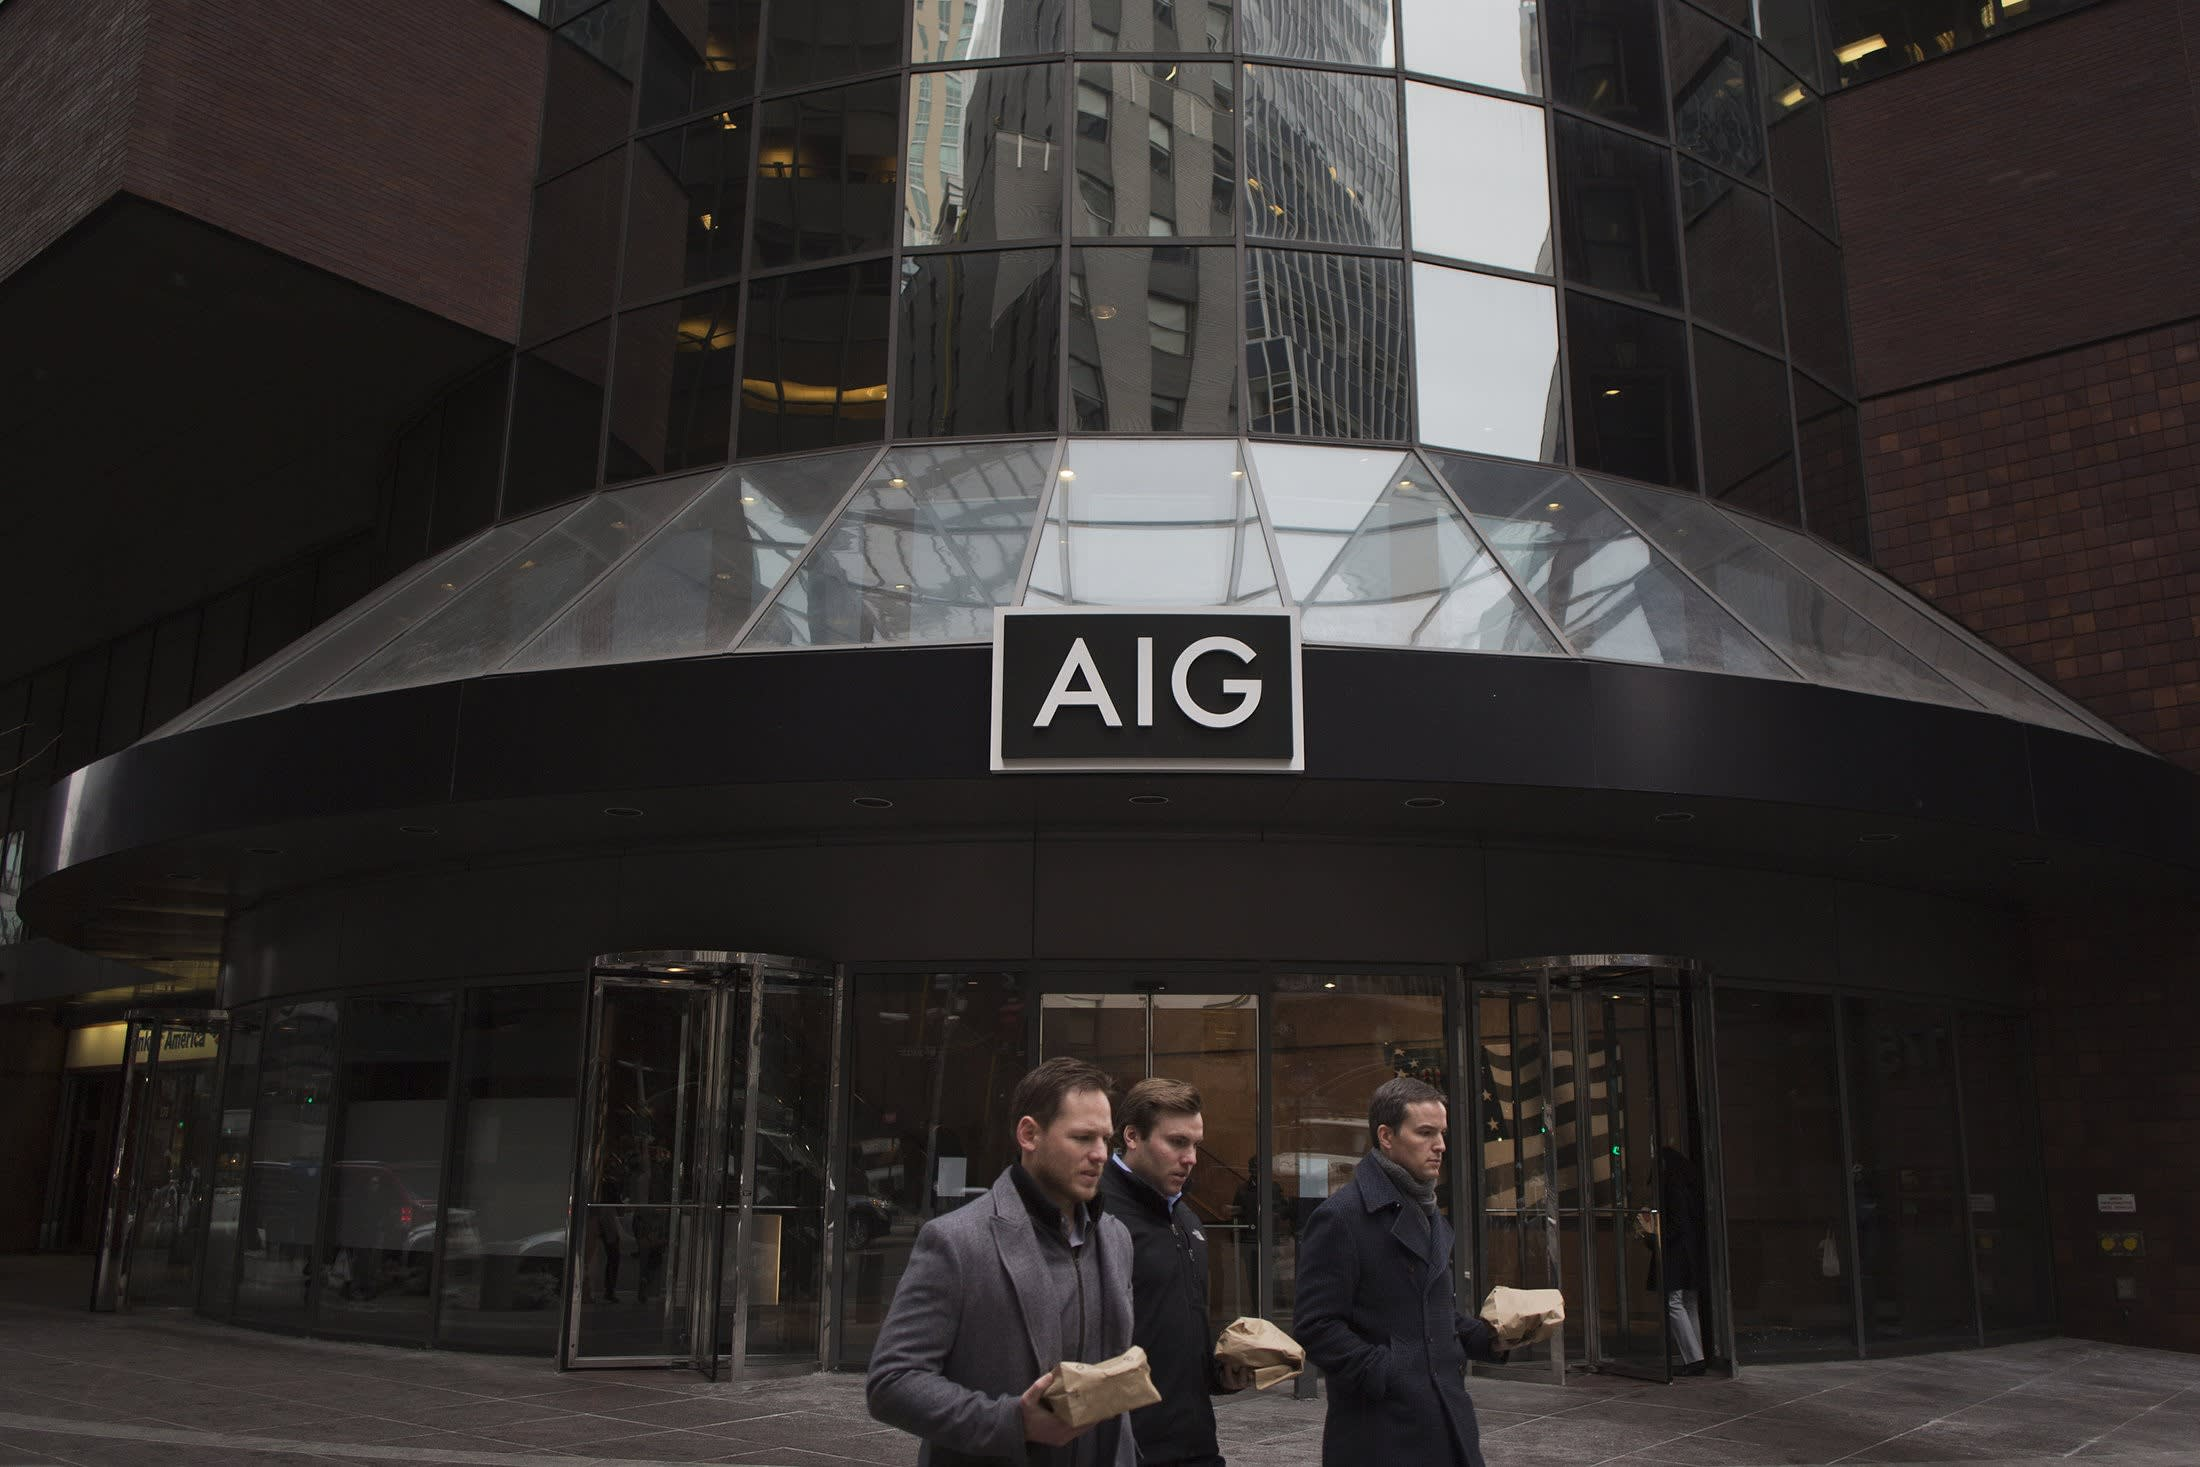 AIG provides a simple answer to life insurance